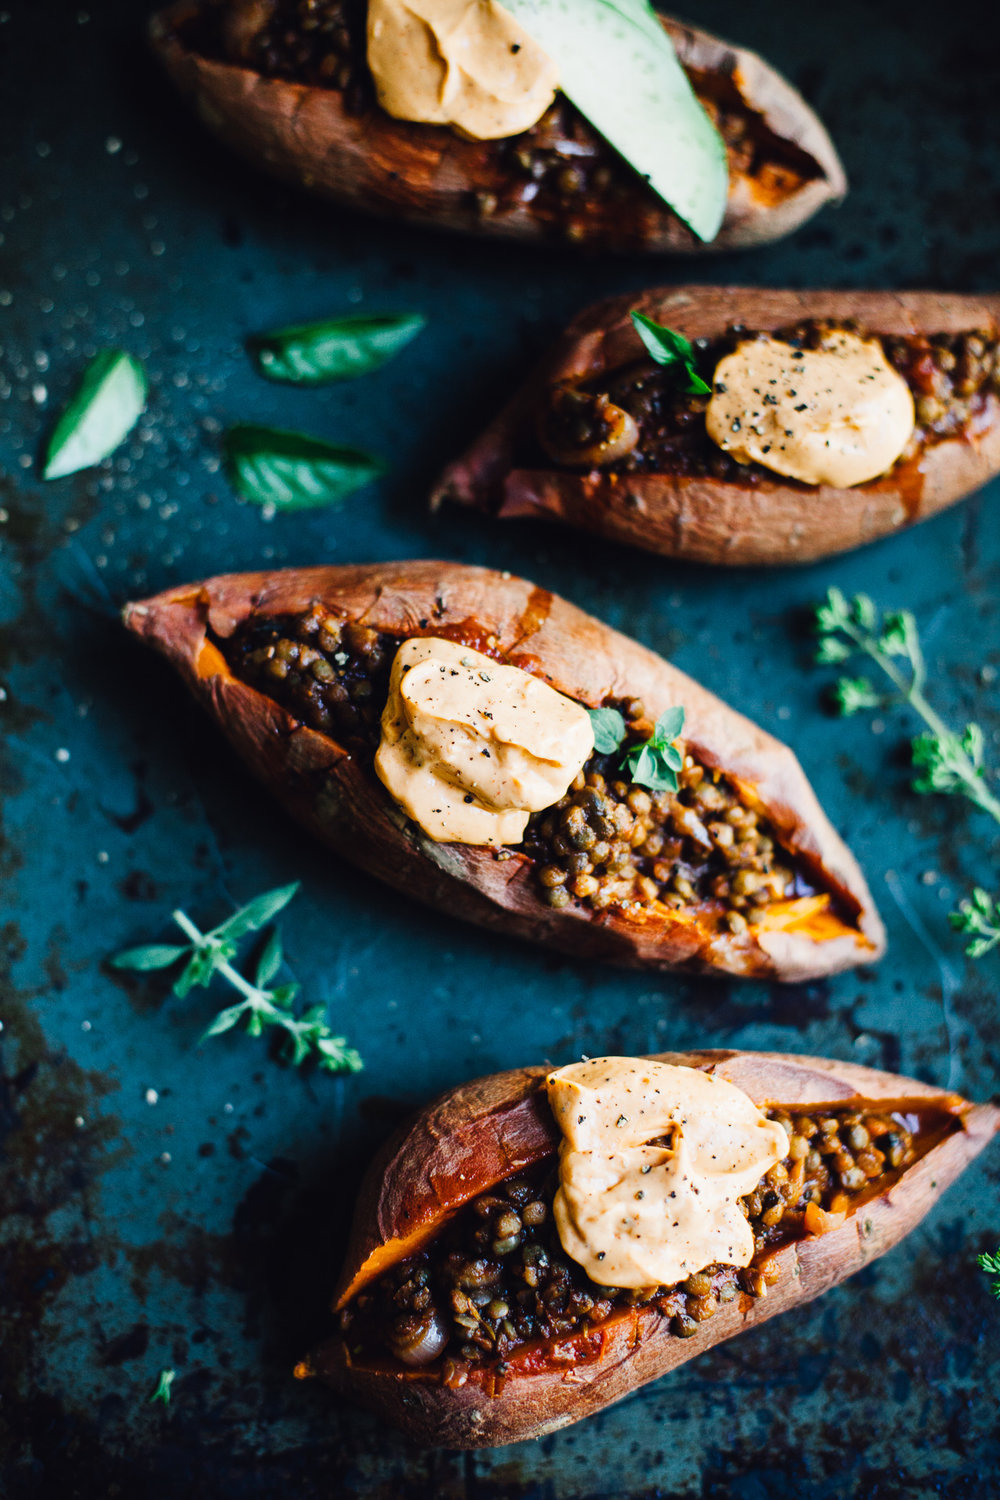 vegan lentil sloppy joe stuffed sweet potatoes | recipe via willfrolicforfood.com